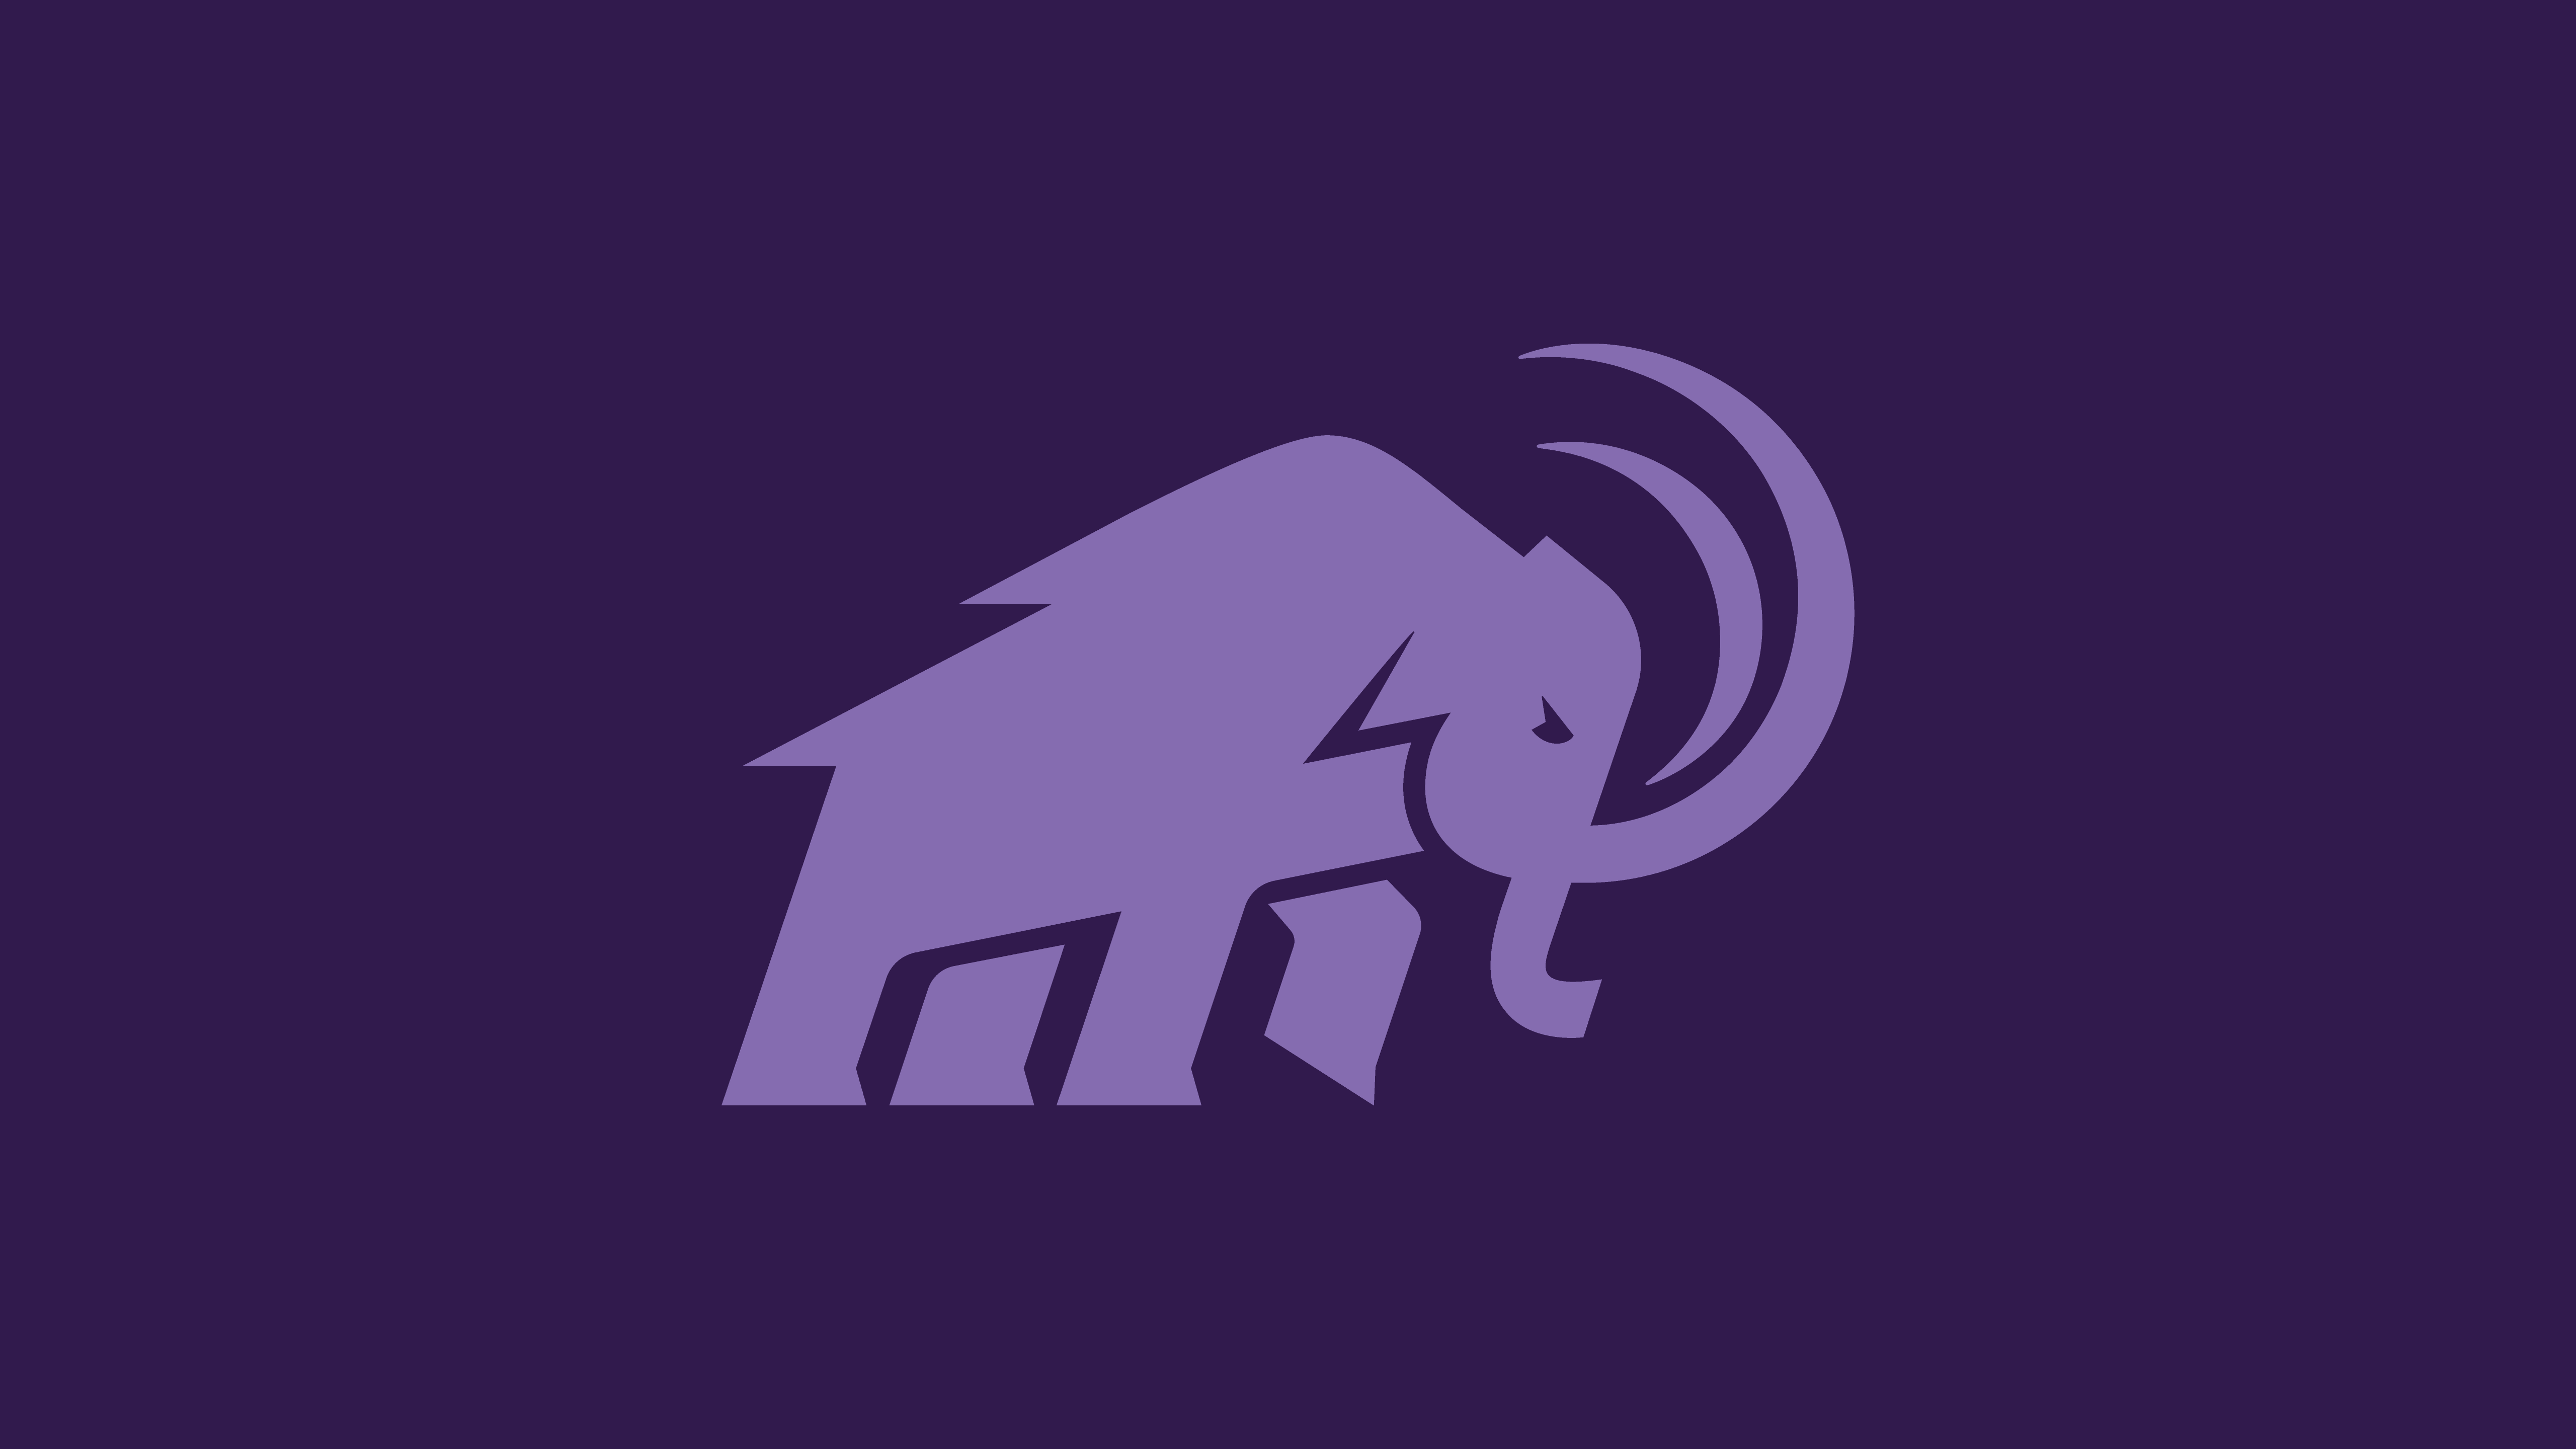 Light purple mammoth logo on darker purple background